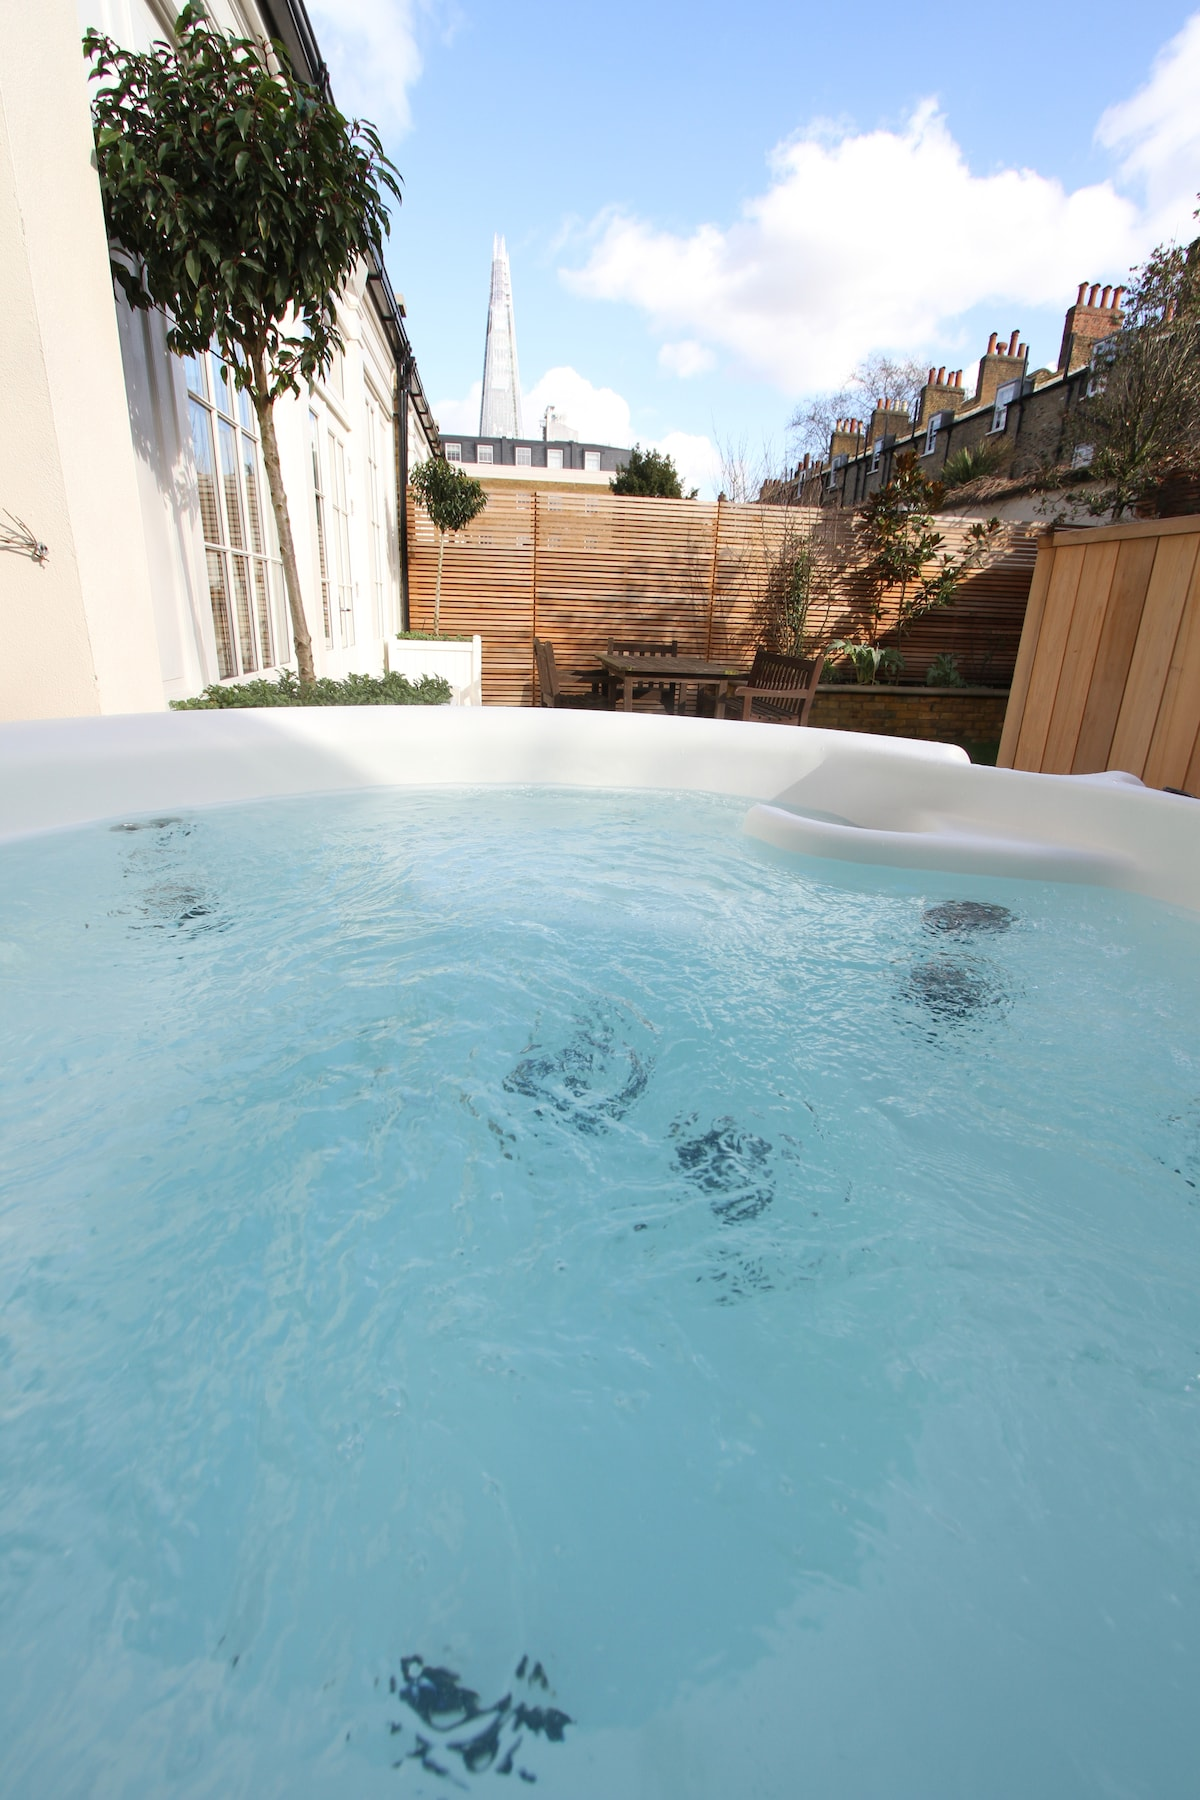 Even if it's not warm out, the hot tub is welcoming and has a stunning view of London's skyline